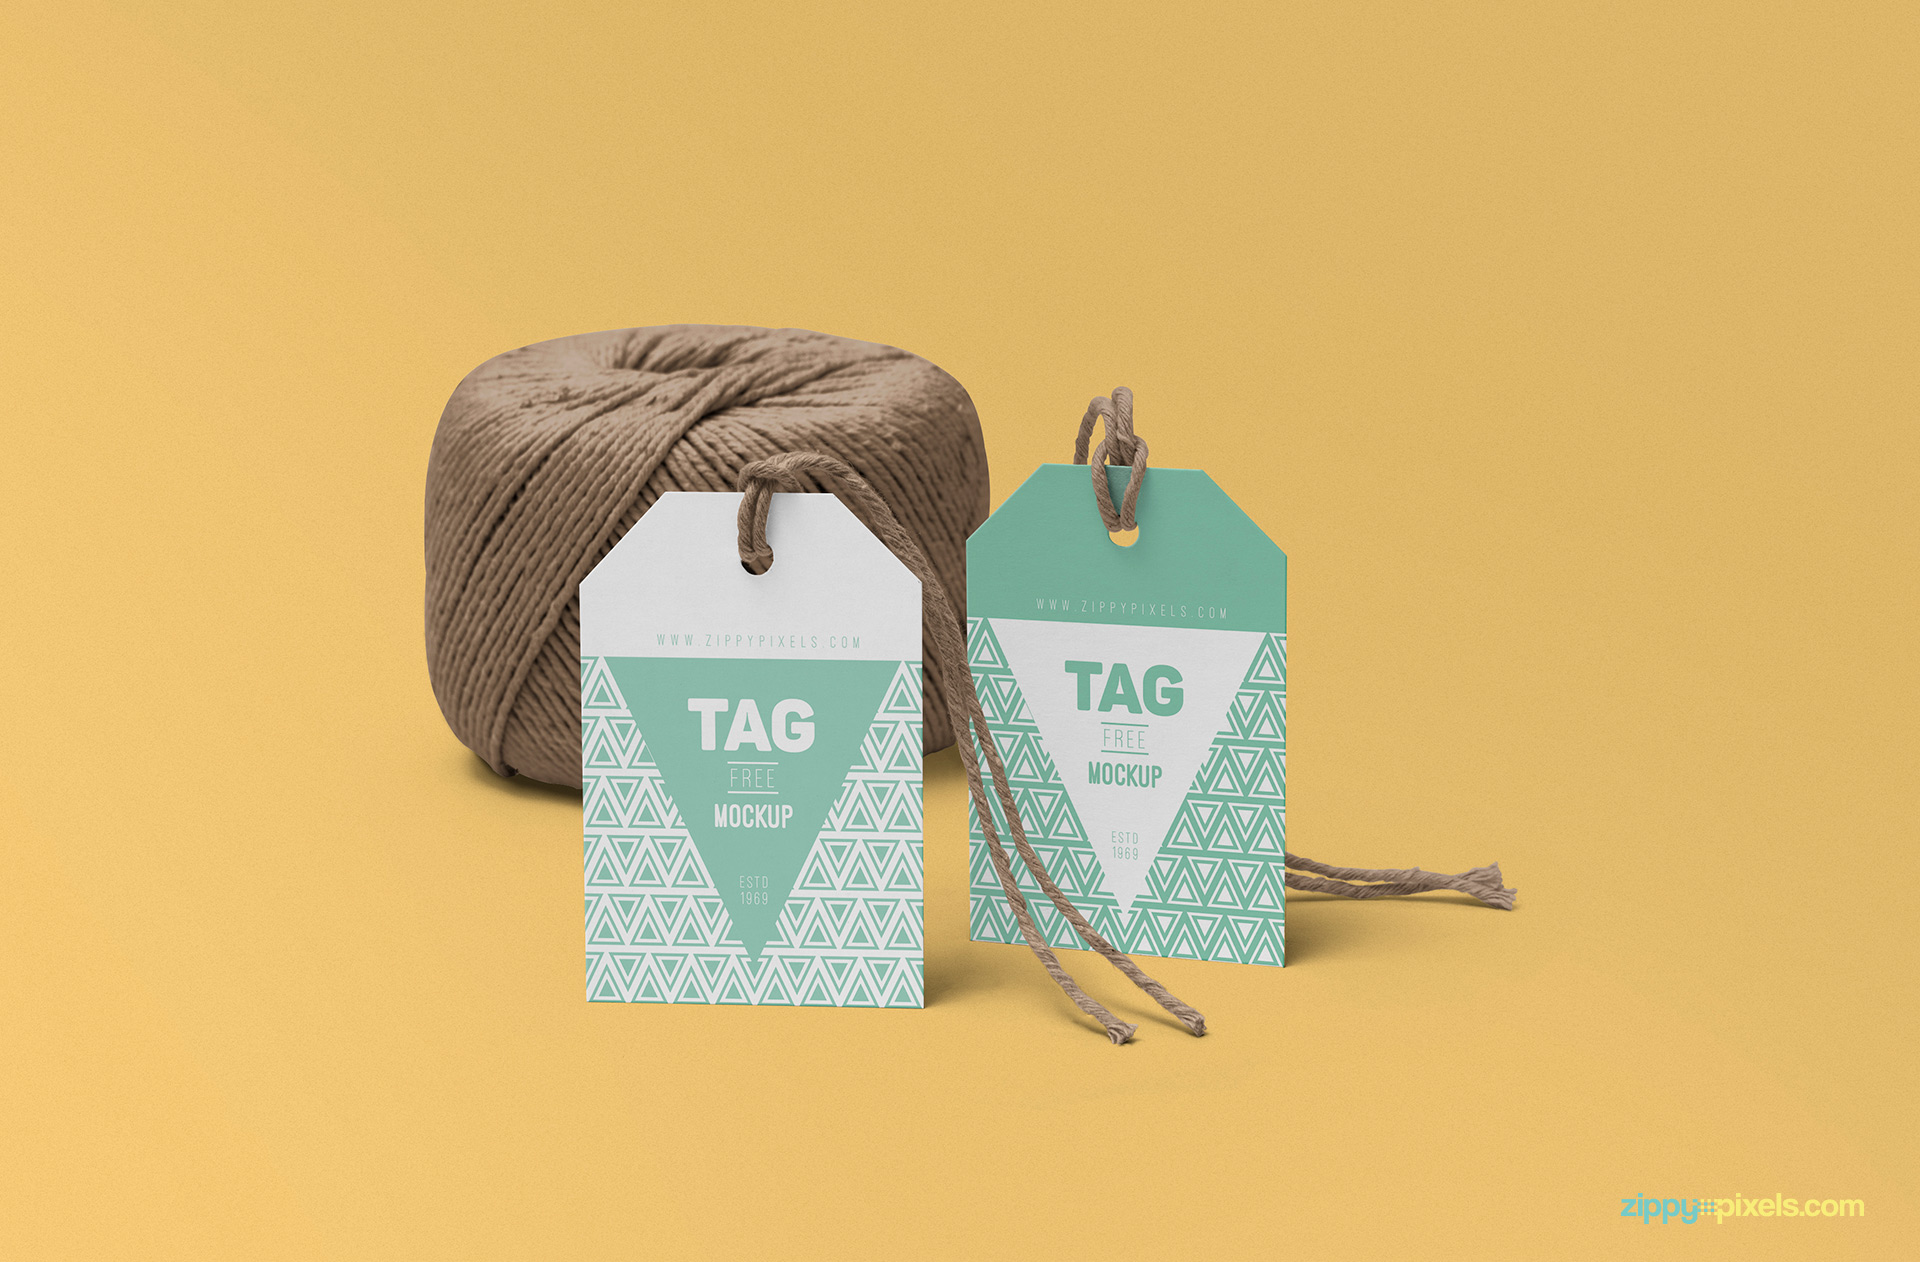 Add any single background to this tag mockup PSD free.